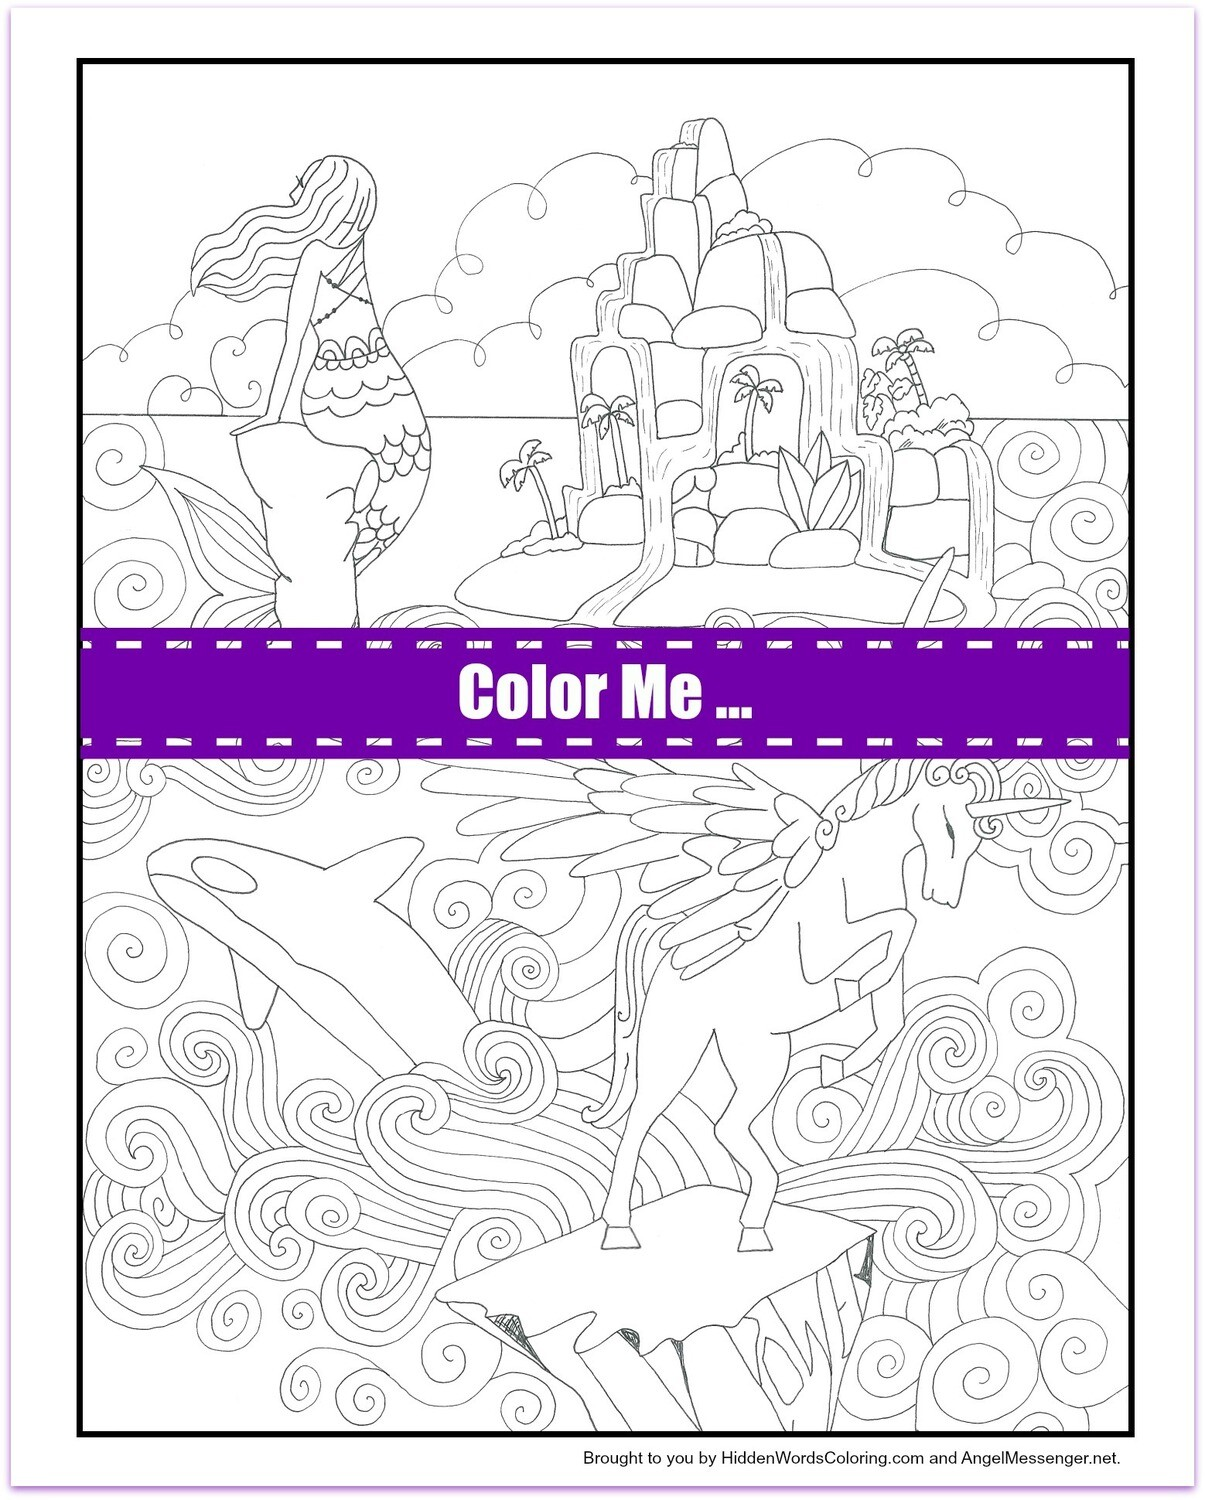 Orca Spirit Coloring Page